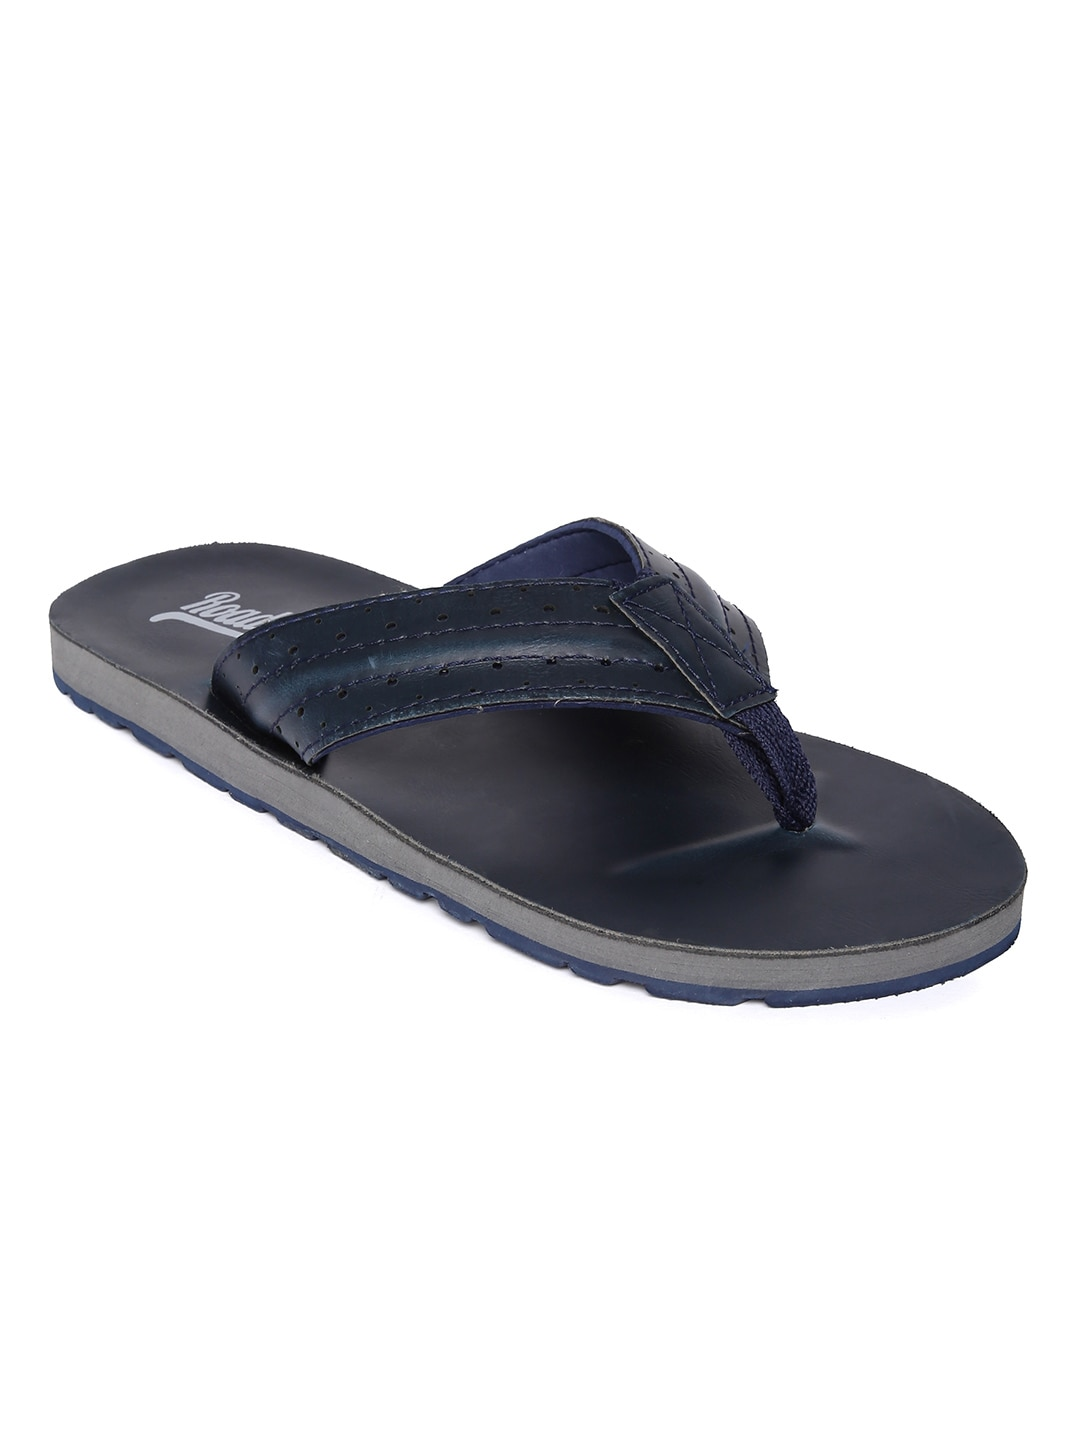 Roadster Men Navy Blue Self Design Thong Flip-Flops image